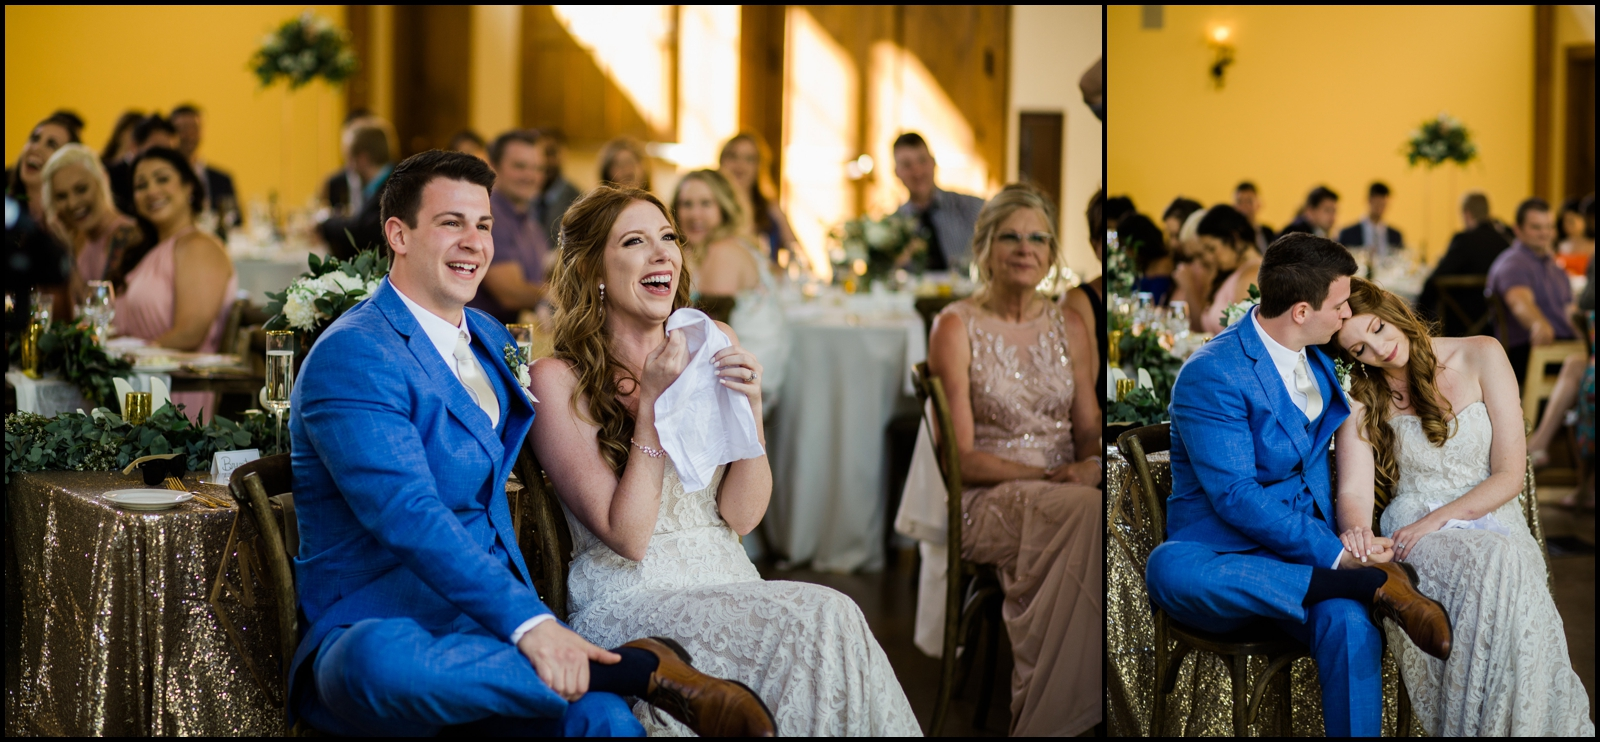 Bride and groom during their wedding reception in Denver